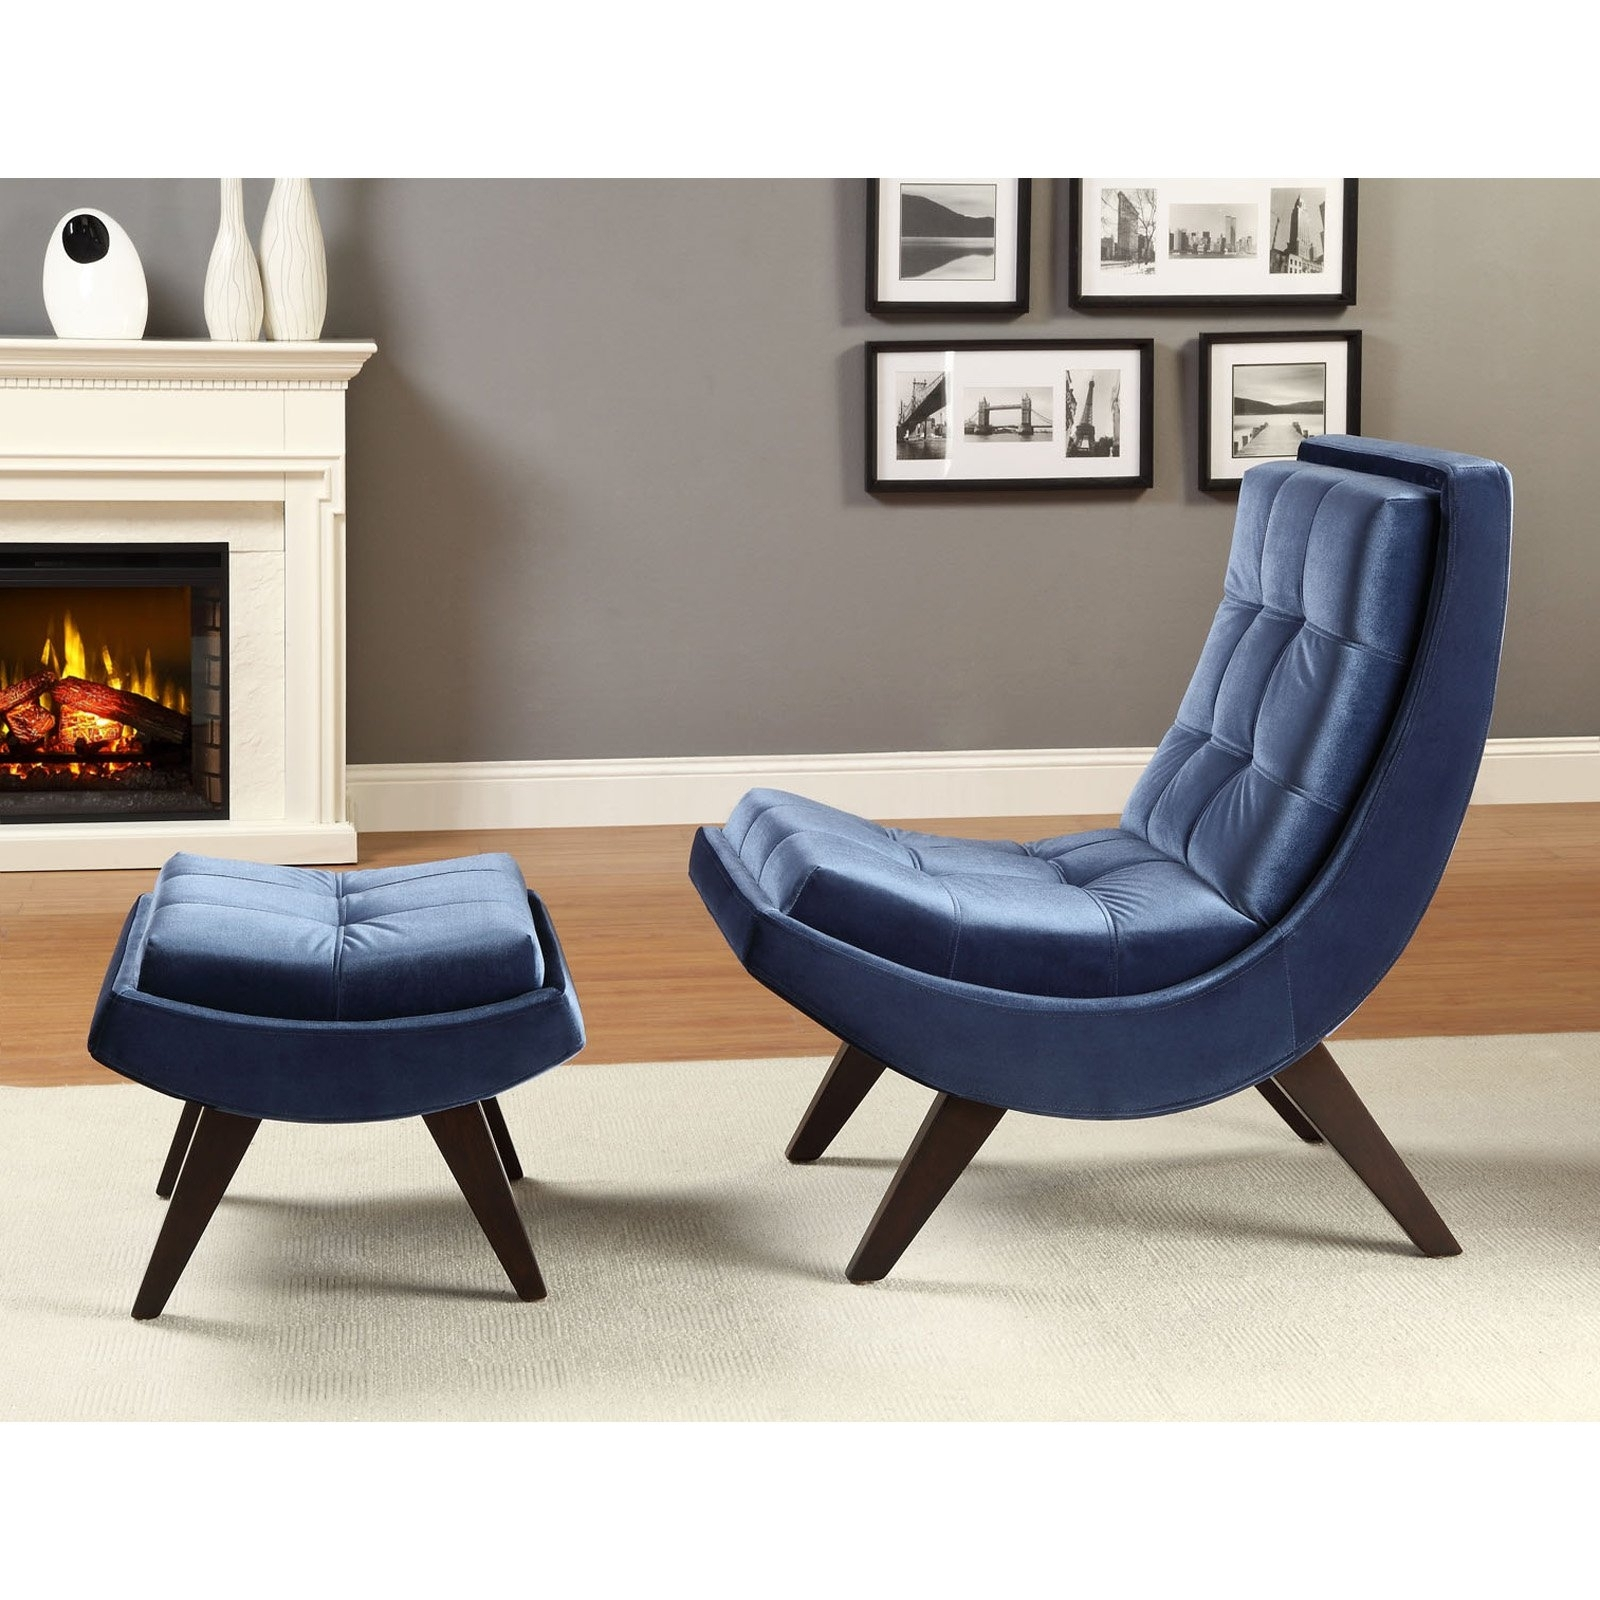 Famous Chaise Lounge Chairs With Ottoman With Regard To Chaise Lounge Chair With Ottoman • Lounge Chairs Ideas (View 3 of 15)